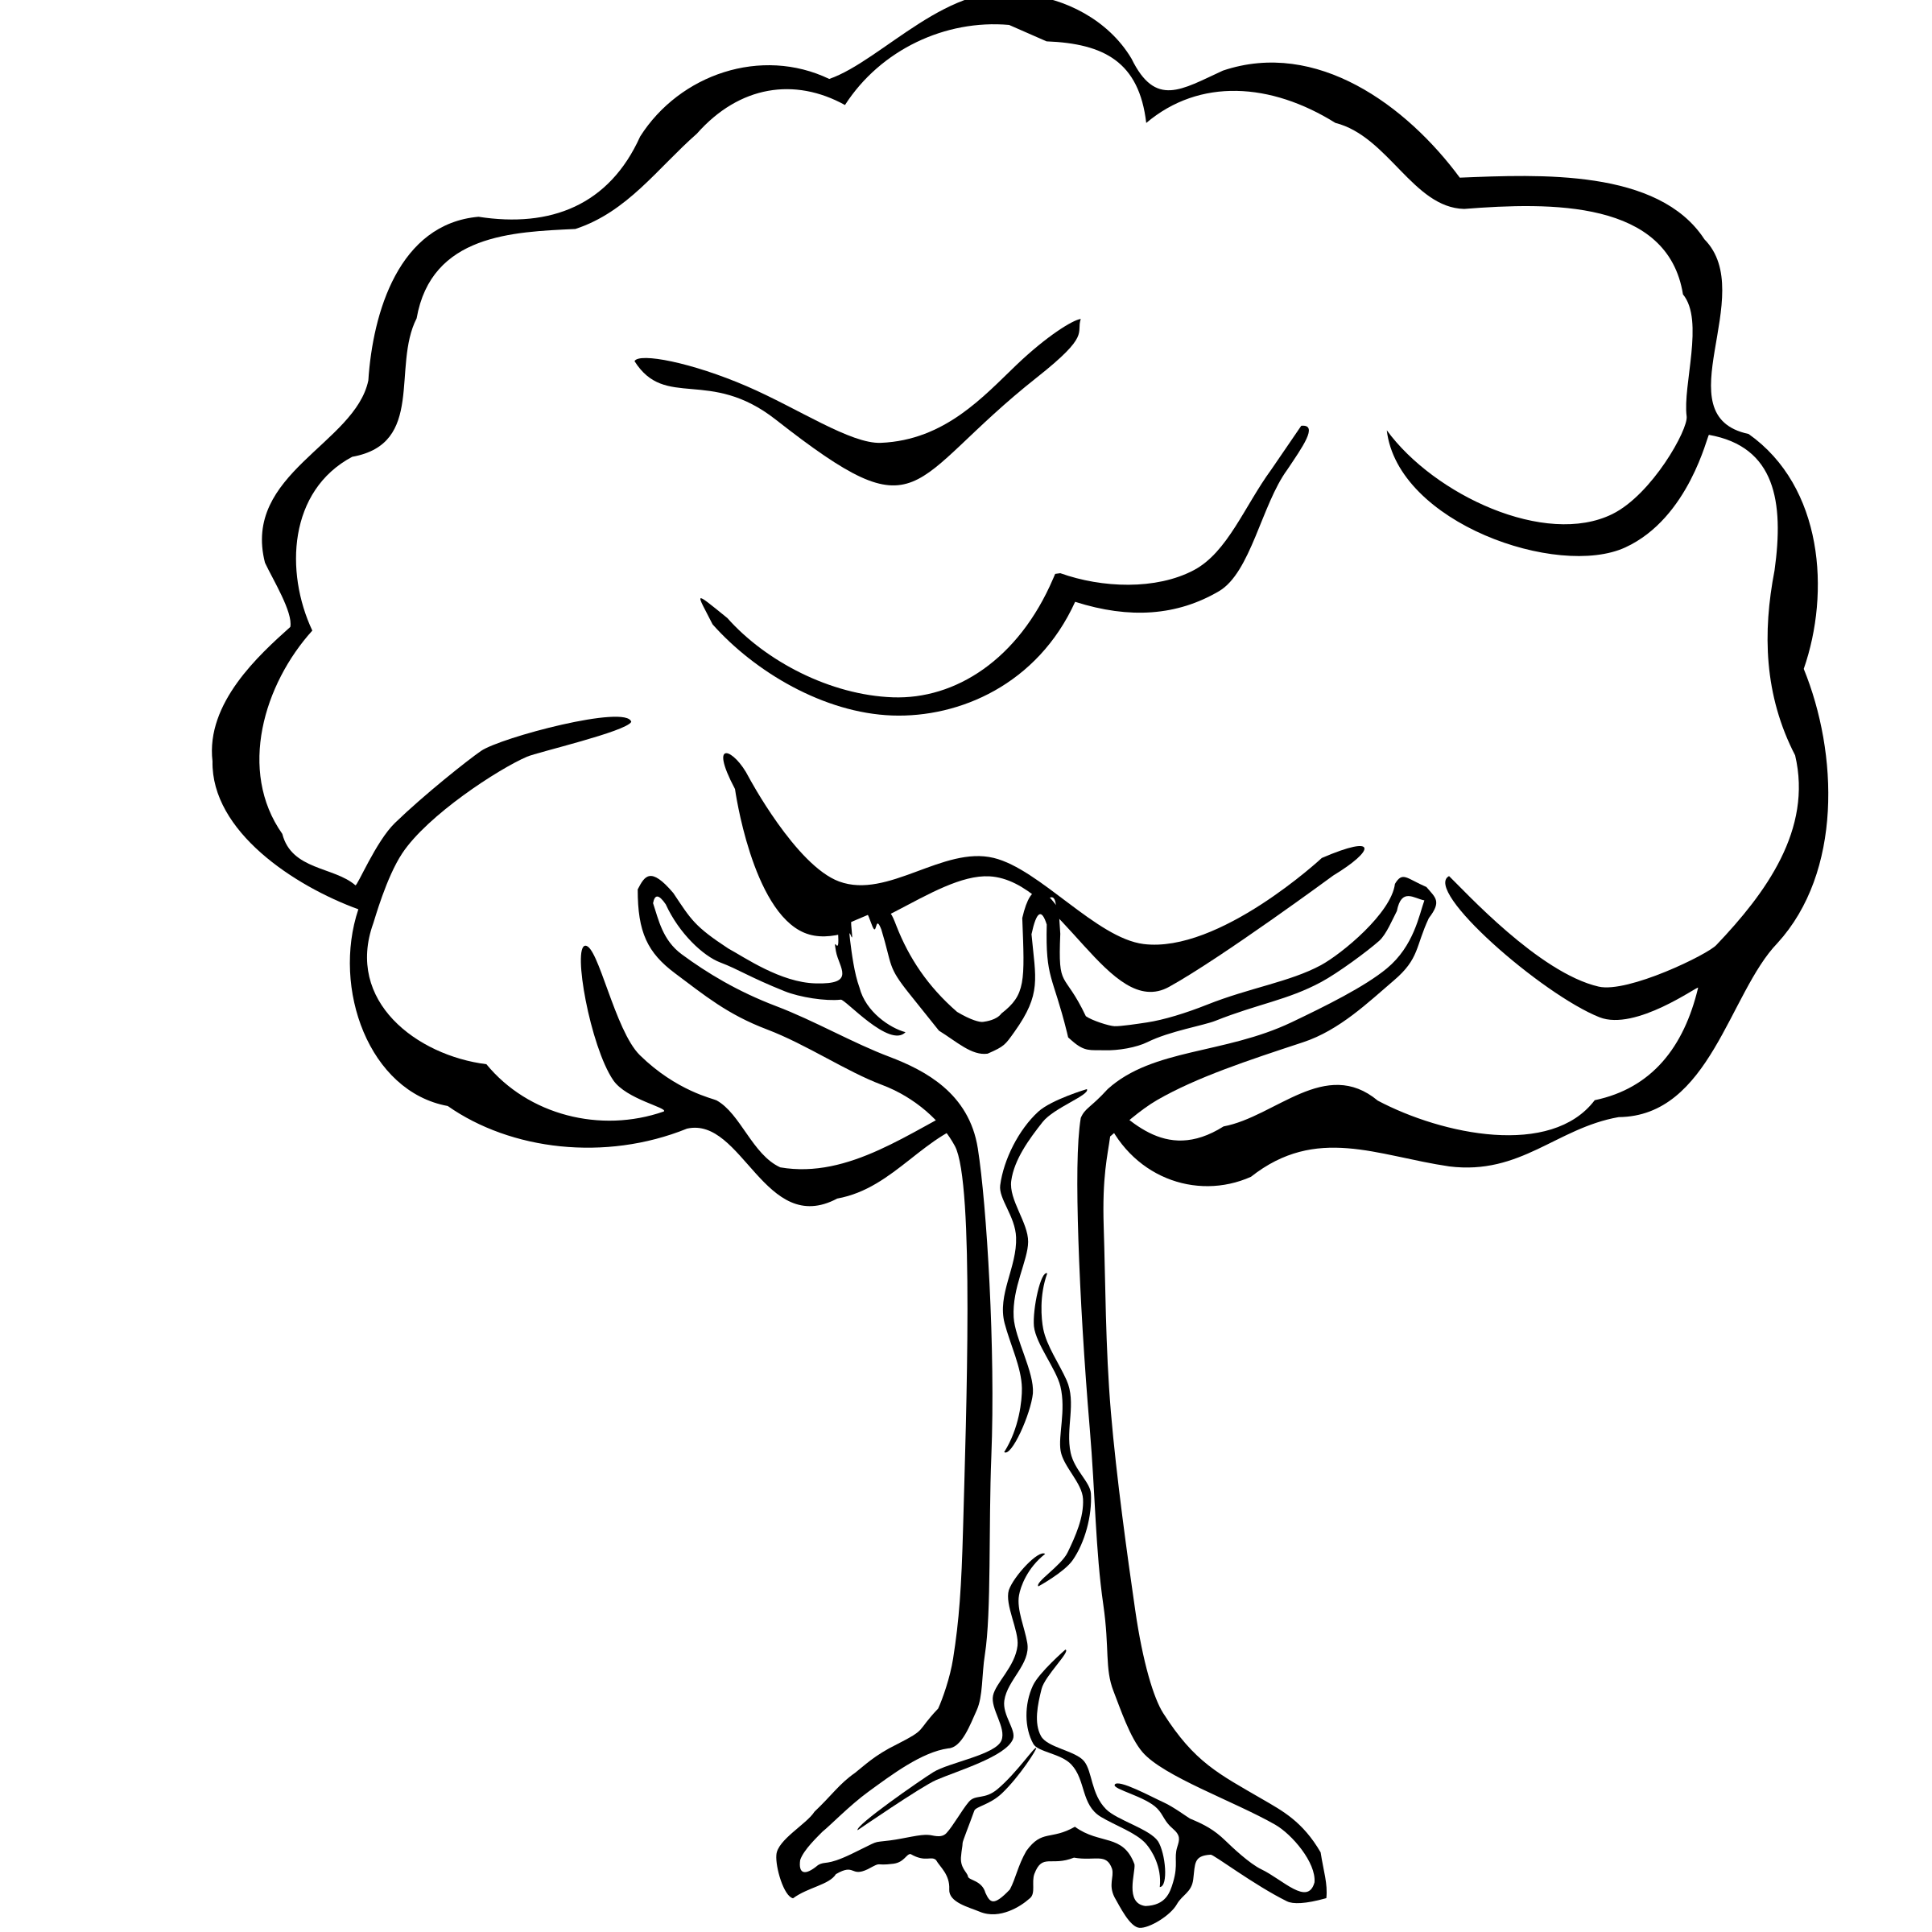 Line Drawing Of Tree : Clipart tree lineart